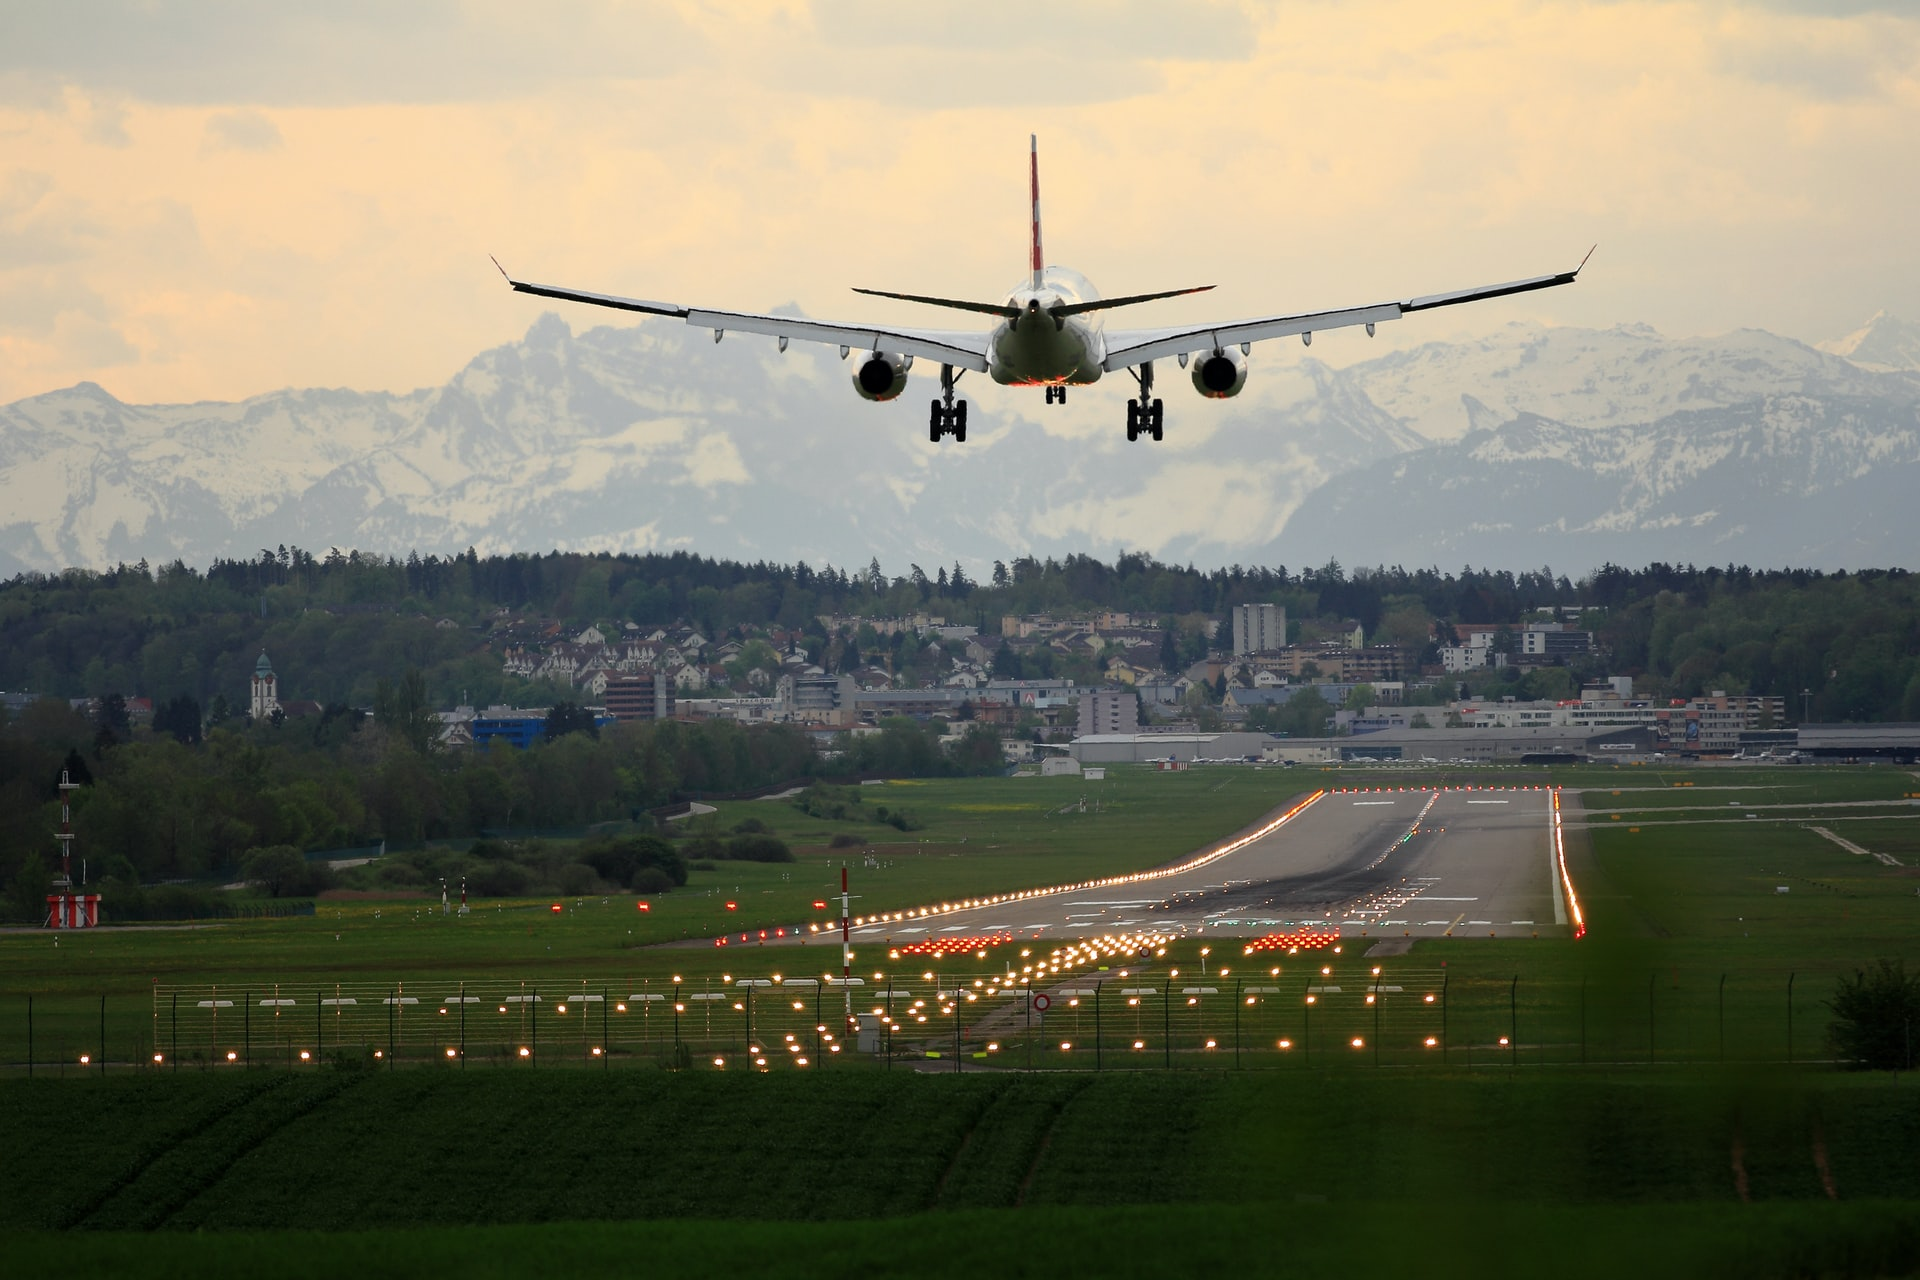 """Noise is defined as """"unwanted sound"""", and, around airports, there's a lot of it. Airplane engines and fans cause significant noise disturbance during takeoff and landing and easily disrupt daily routines, including sleep and conversation. Read more about the way technical and operational solutions can reduce the negative impact of aircraft noise in and around airports."""